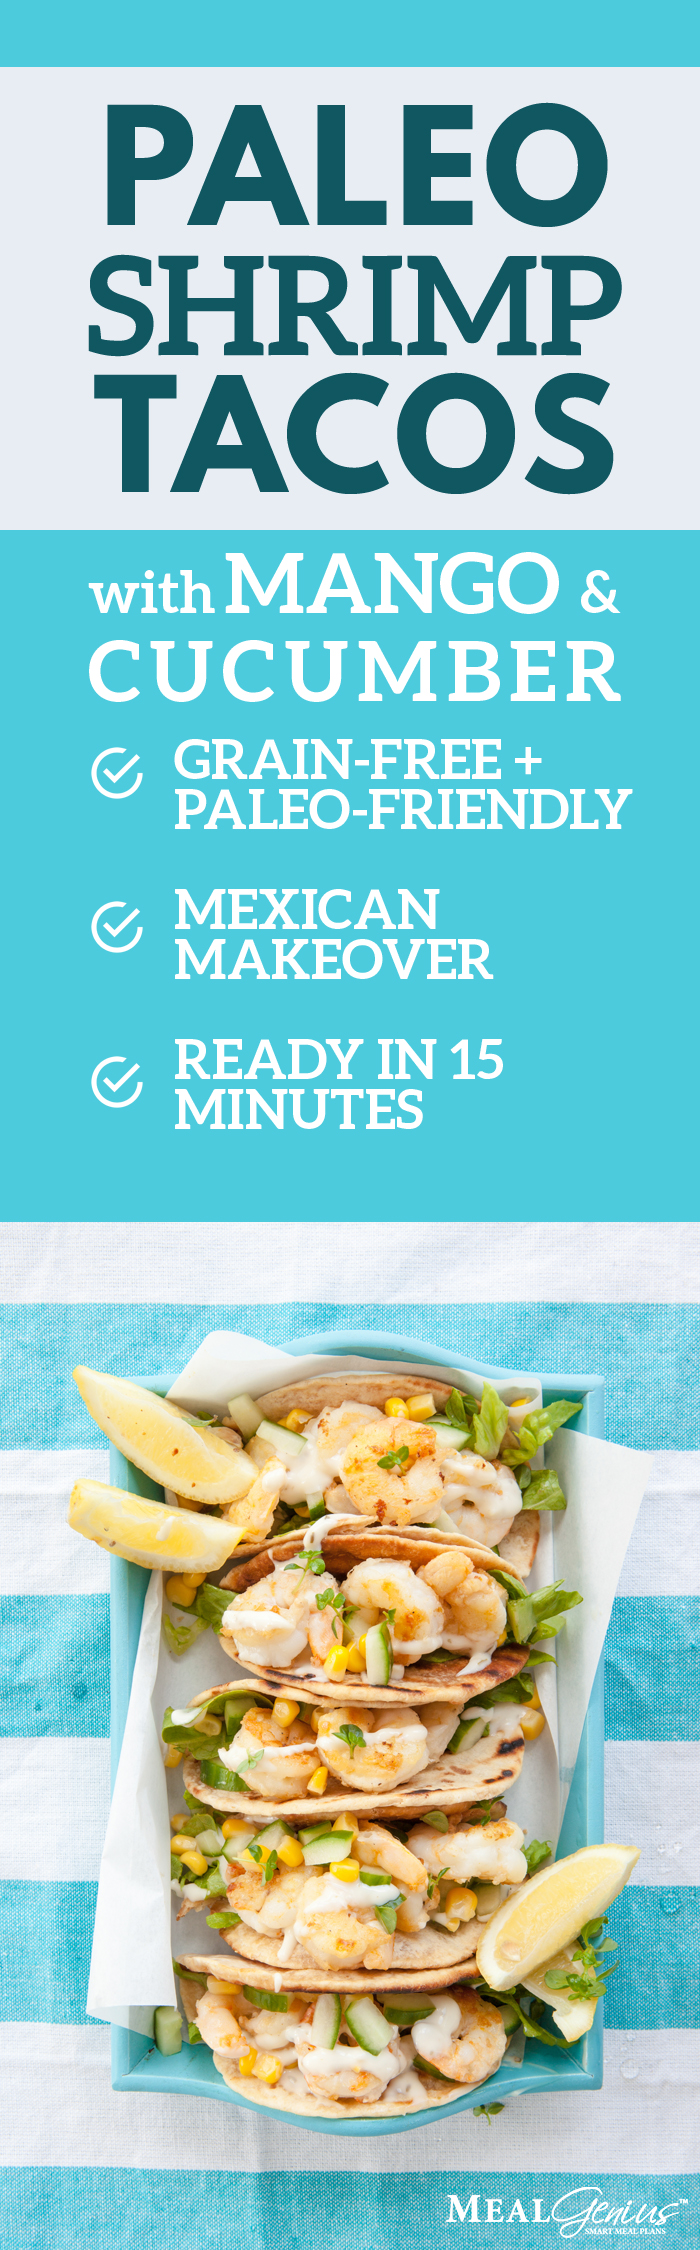 Paleo Shrimp Tacos - Meal Genius